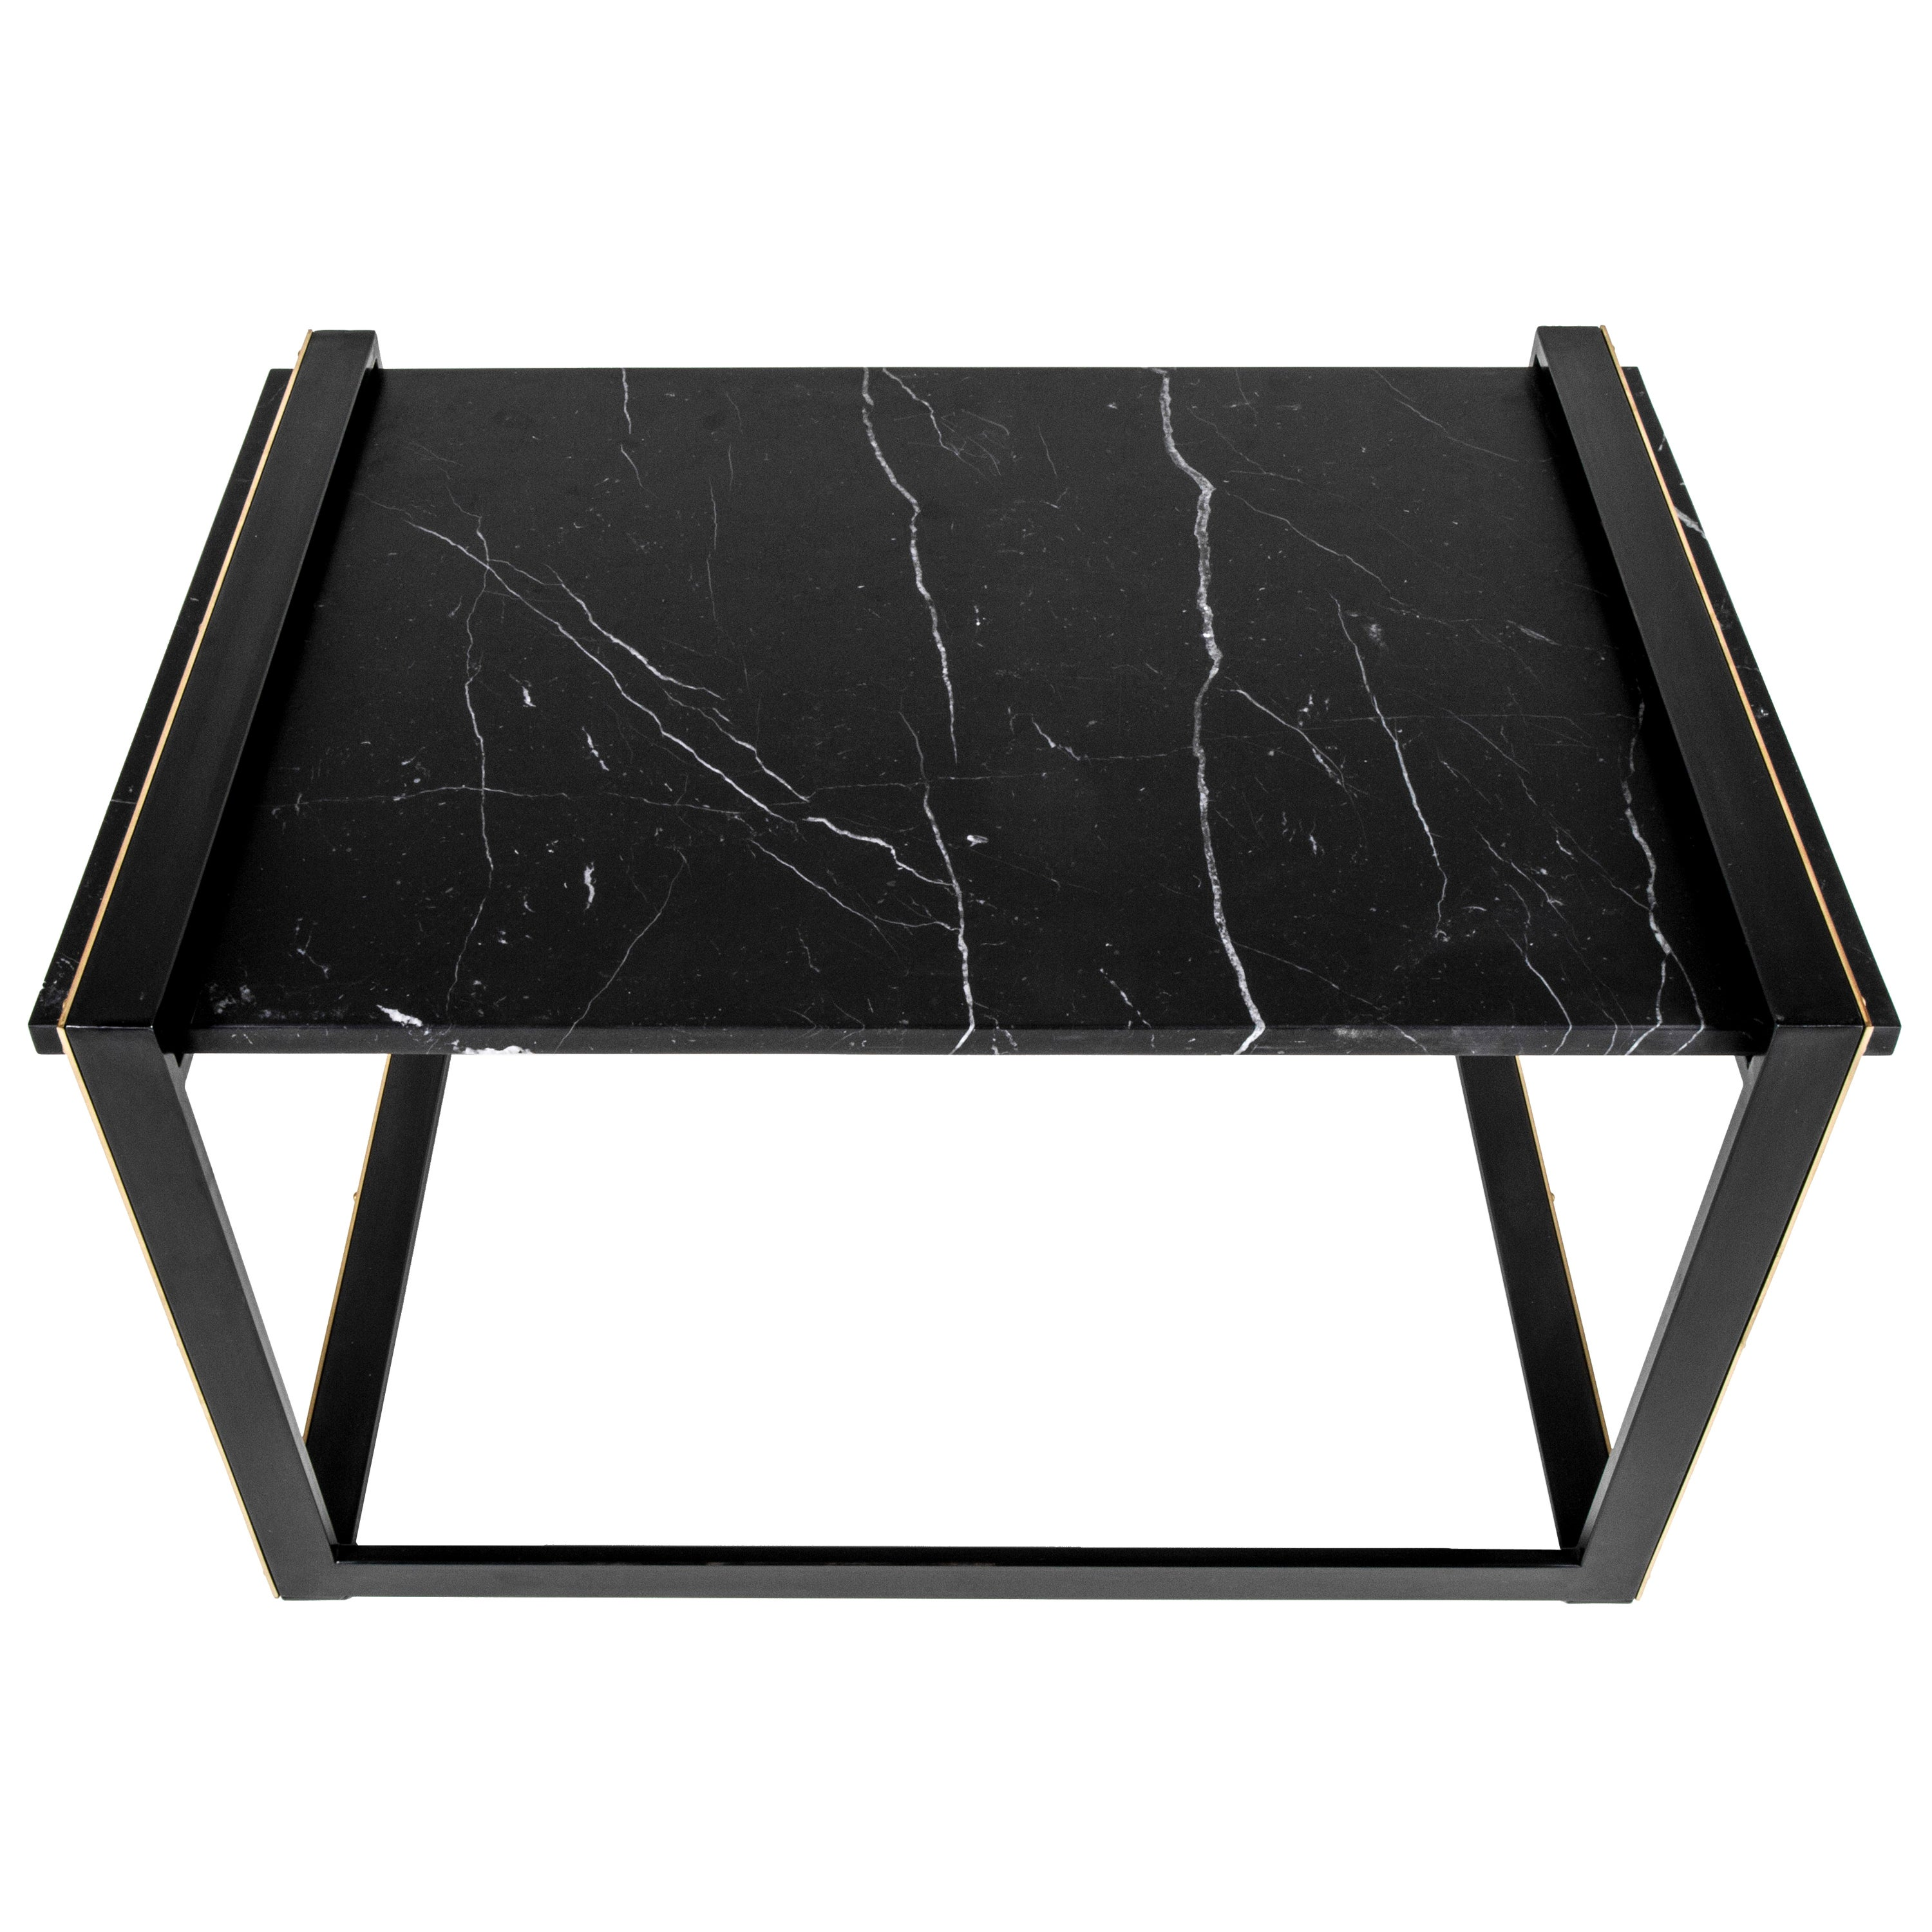 Daniel Side Table in Blackened Steel, Nero Marquina Marble and Brass Accents